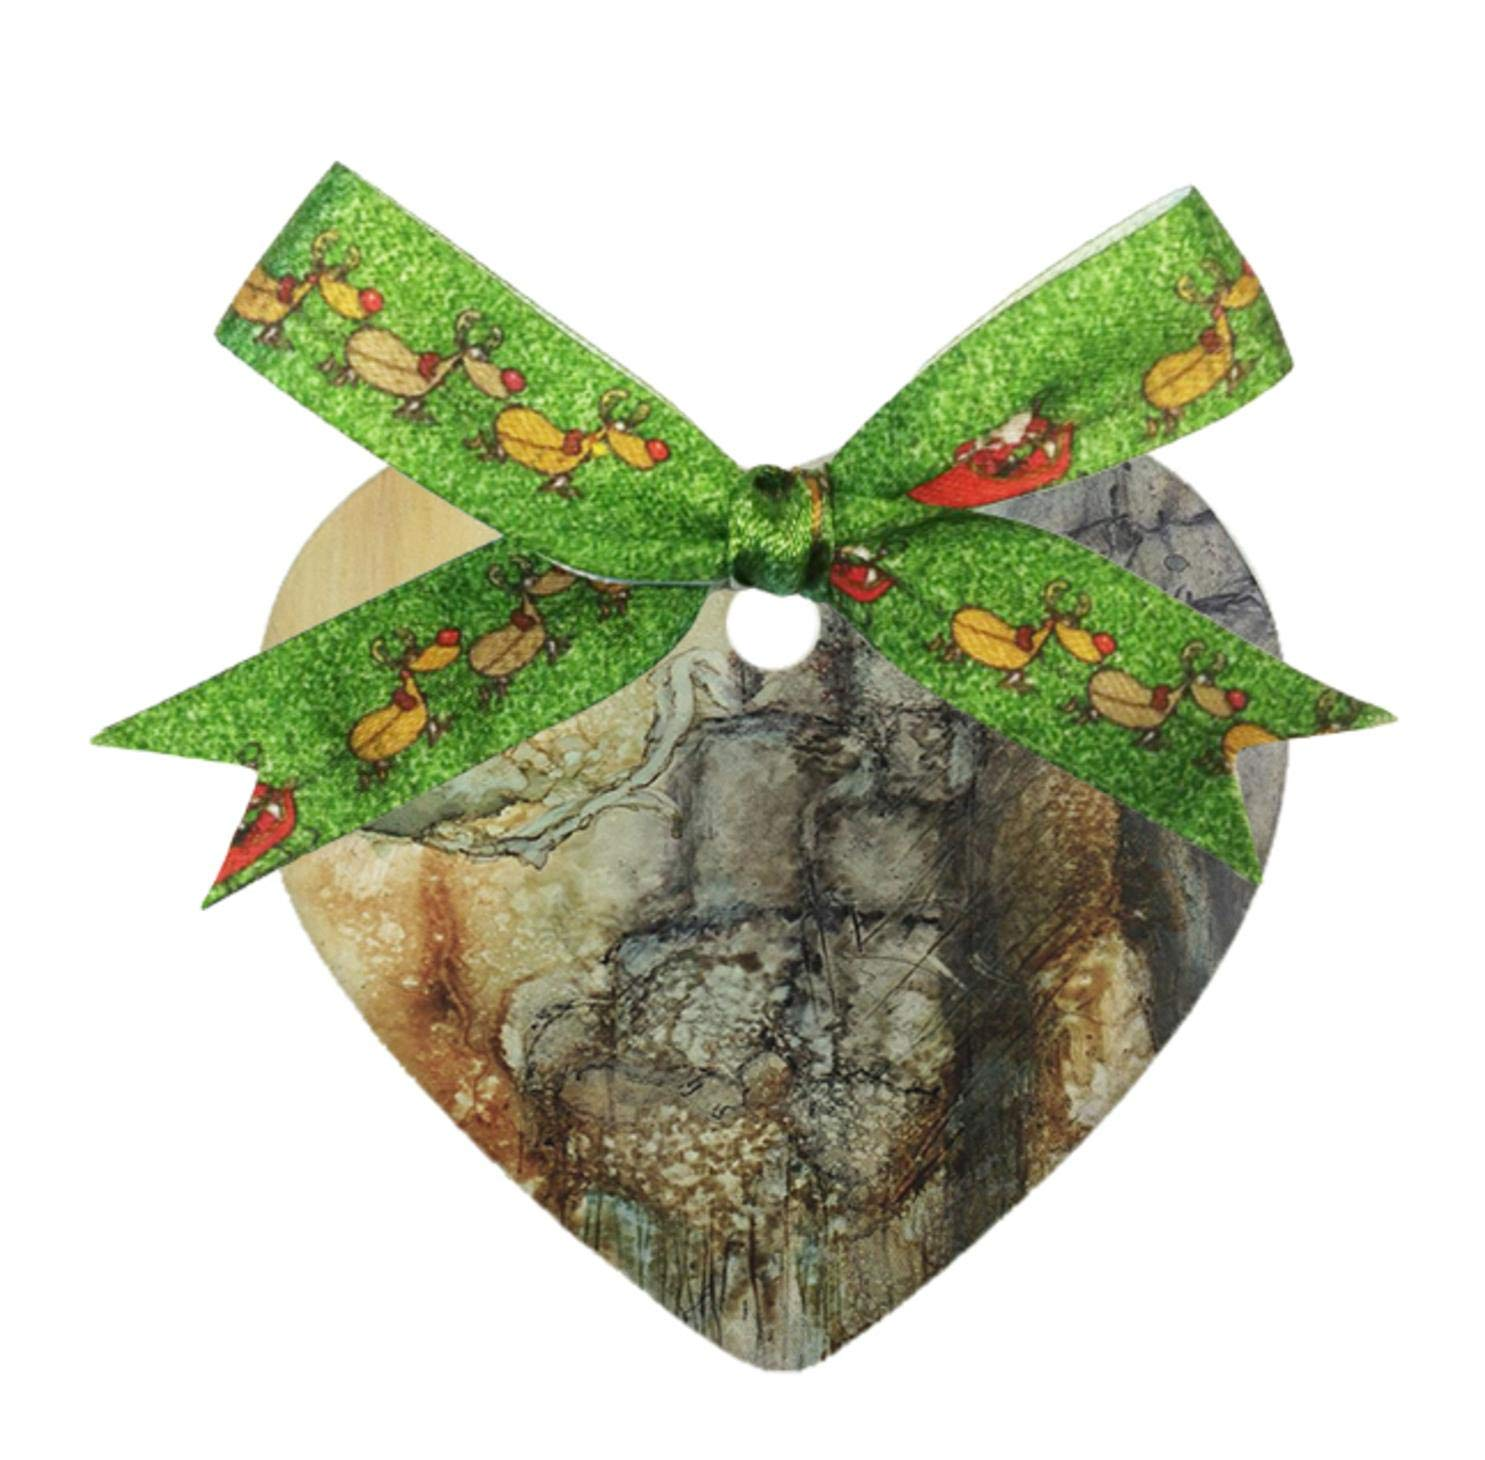 Decorative Hanging Ornaments Alcohol Ink Pastel Stone Wall Personalized Heart Porcelain Ornaments Christmas Ornaments Home Decoration